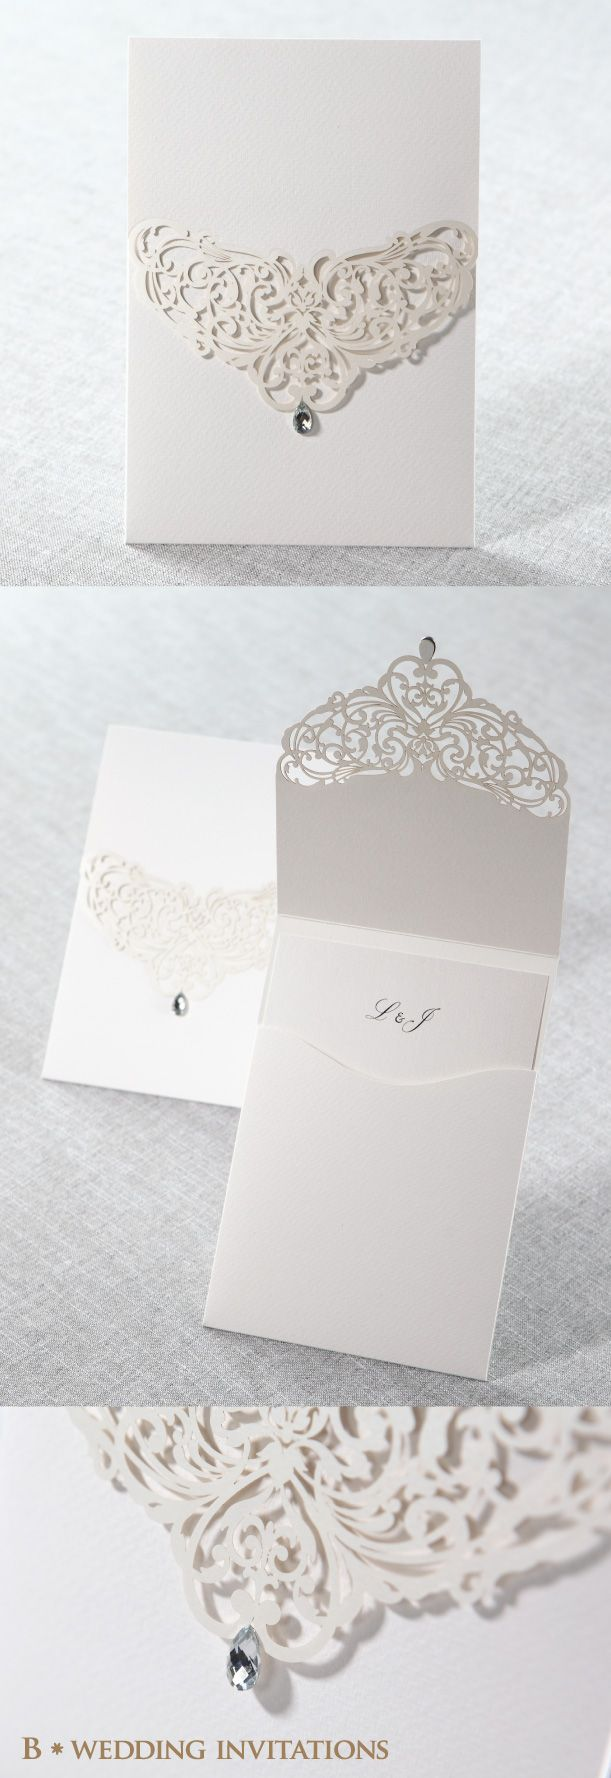 Verona wedding invitation boxed white lace amp pearl brooch w - Jeweled White Laser Cut Pocket By B Wedding Invitations